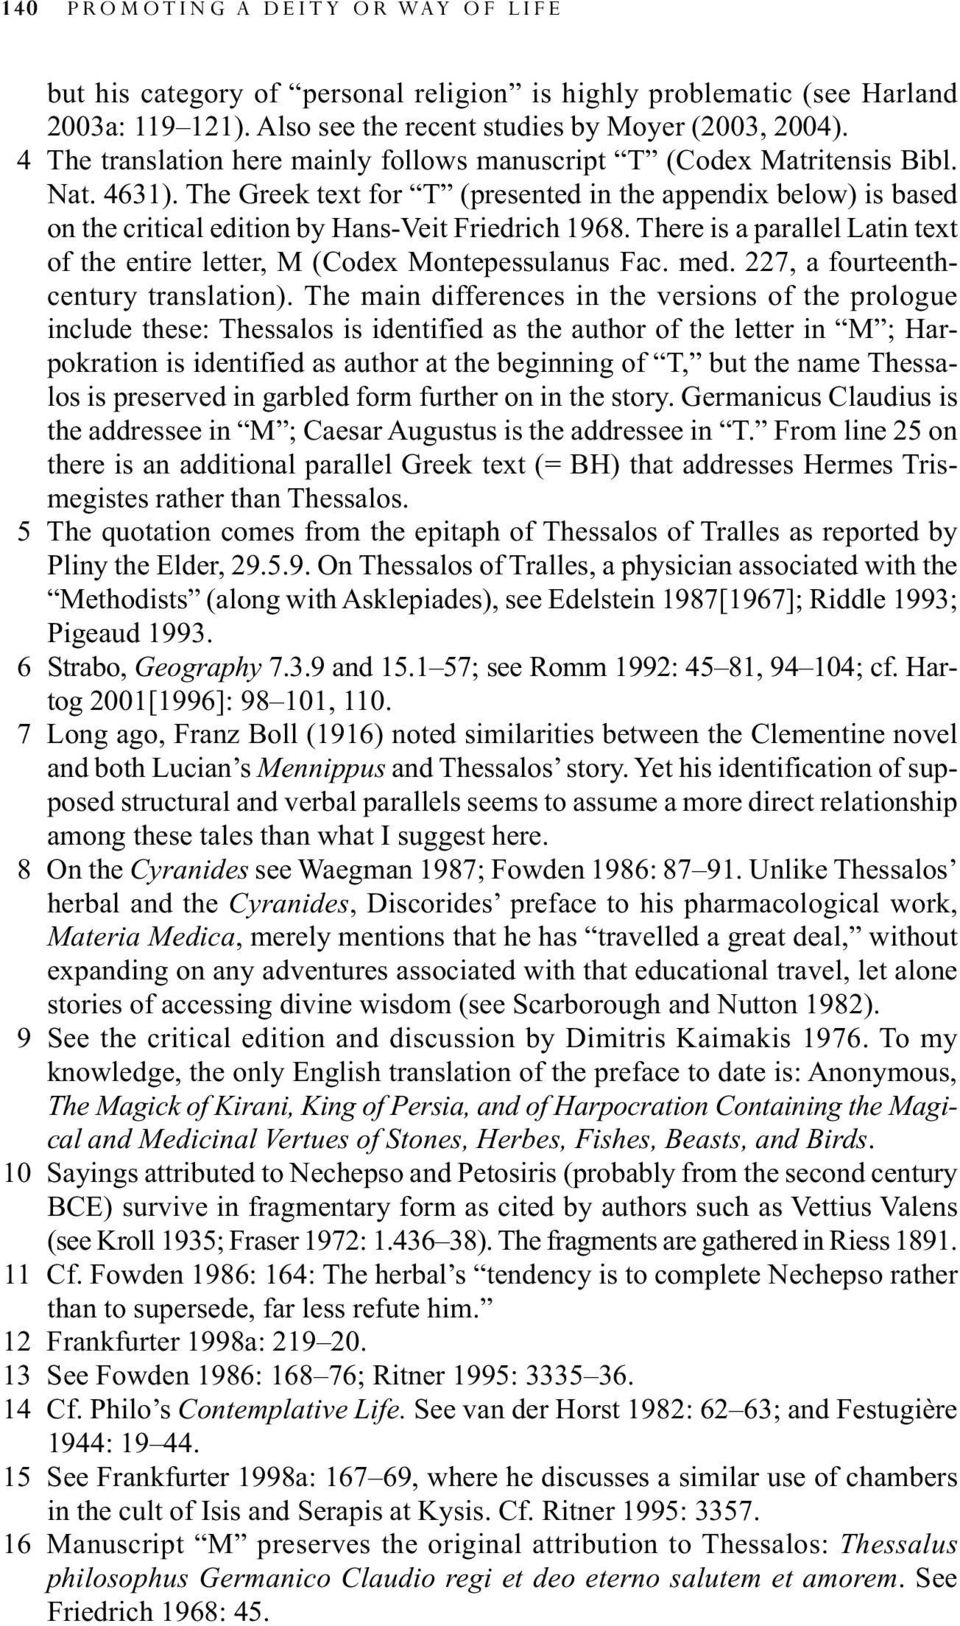 The Greek text for T (presented in the appendix below) is based on the critical edition by Hans-Veit Friedrich 1968. There is a parallel Latin text of the entire letter, M (Codex Montepessulanus Fac.